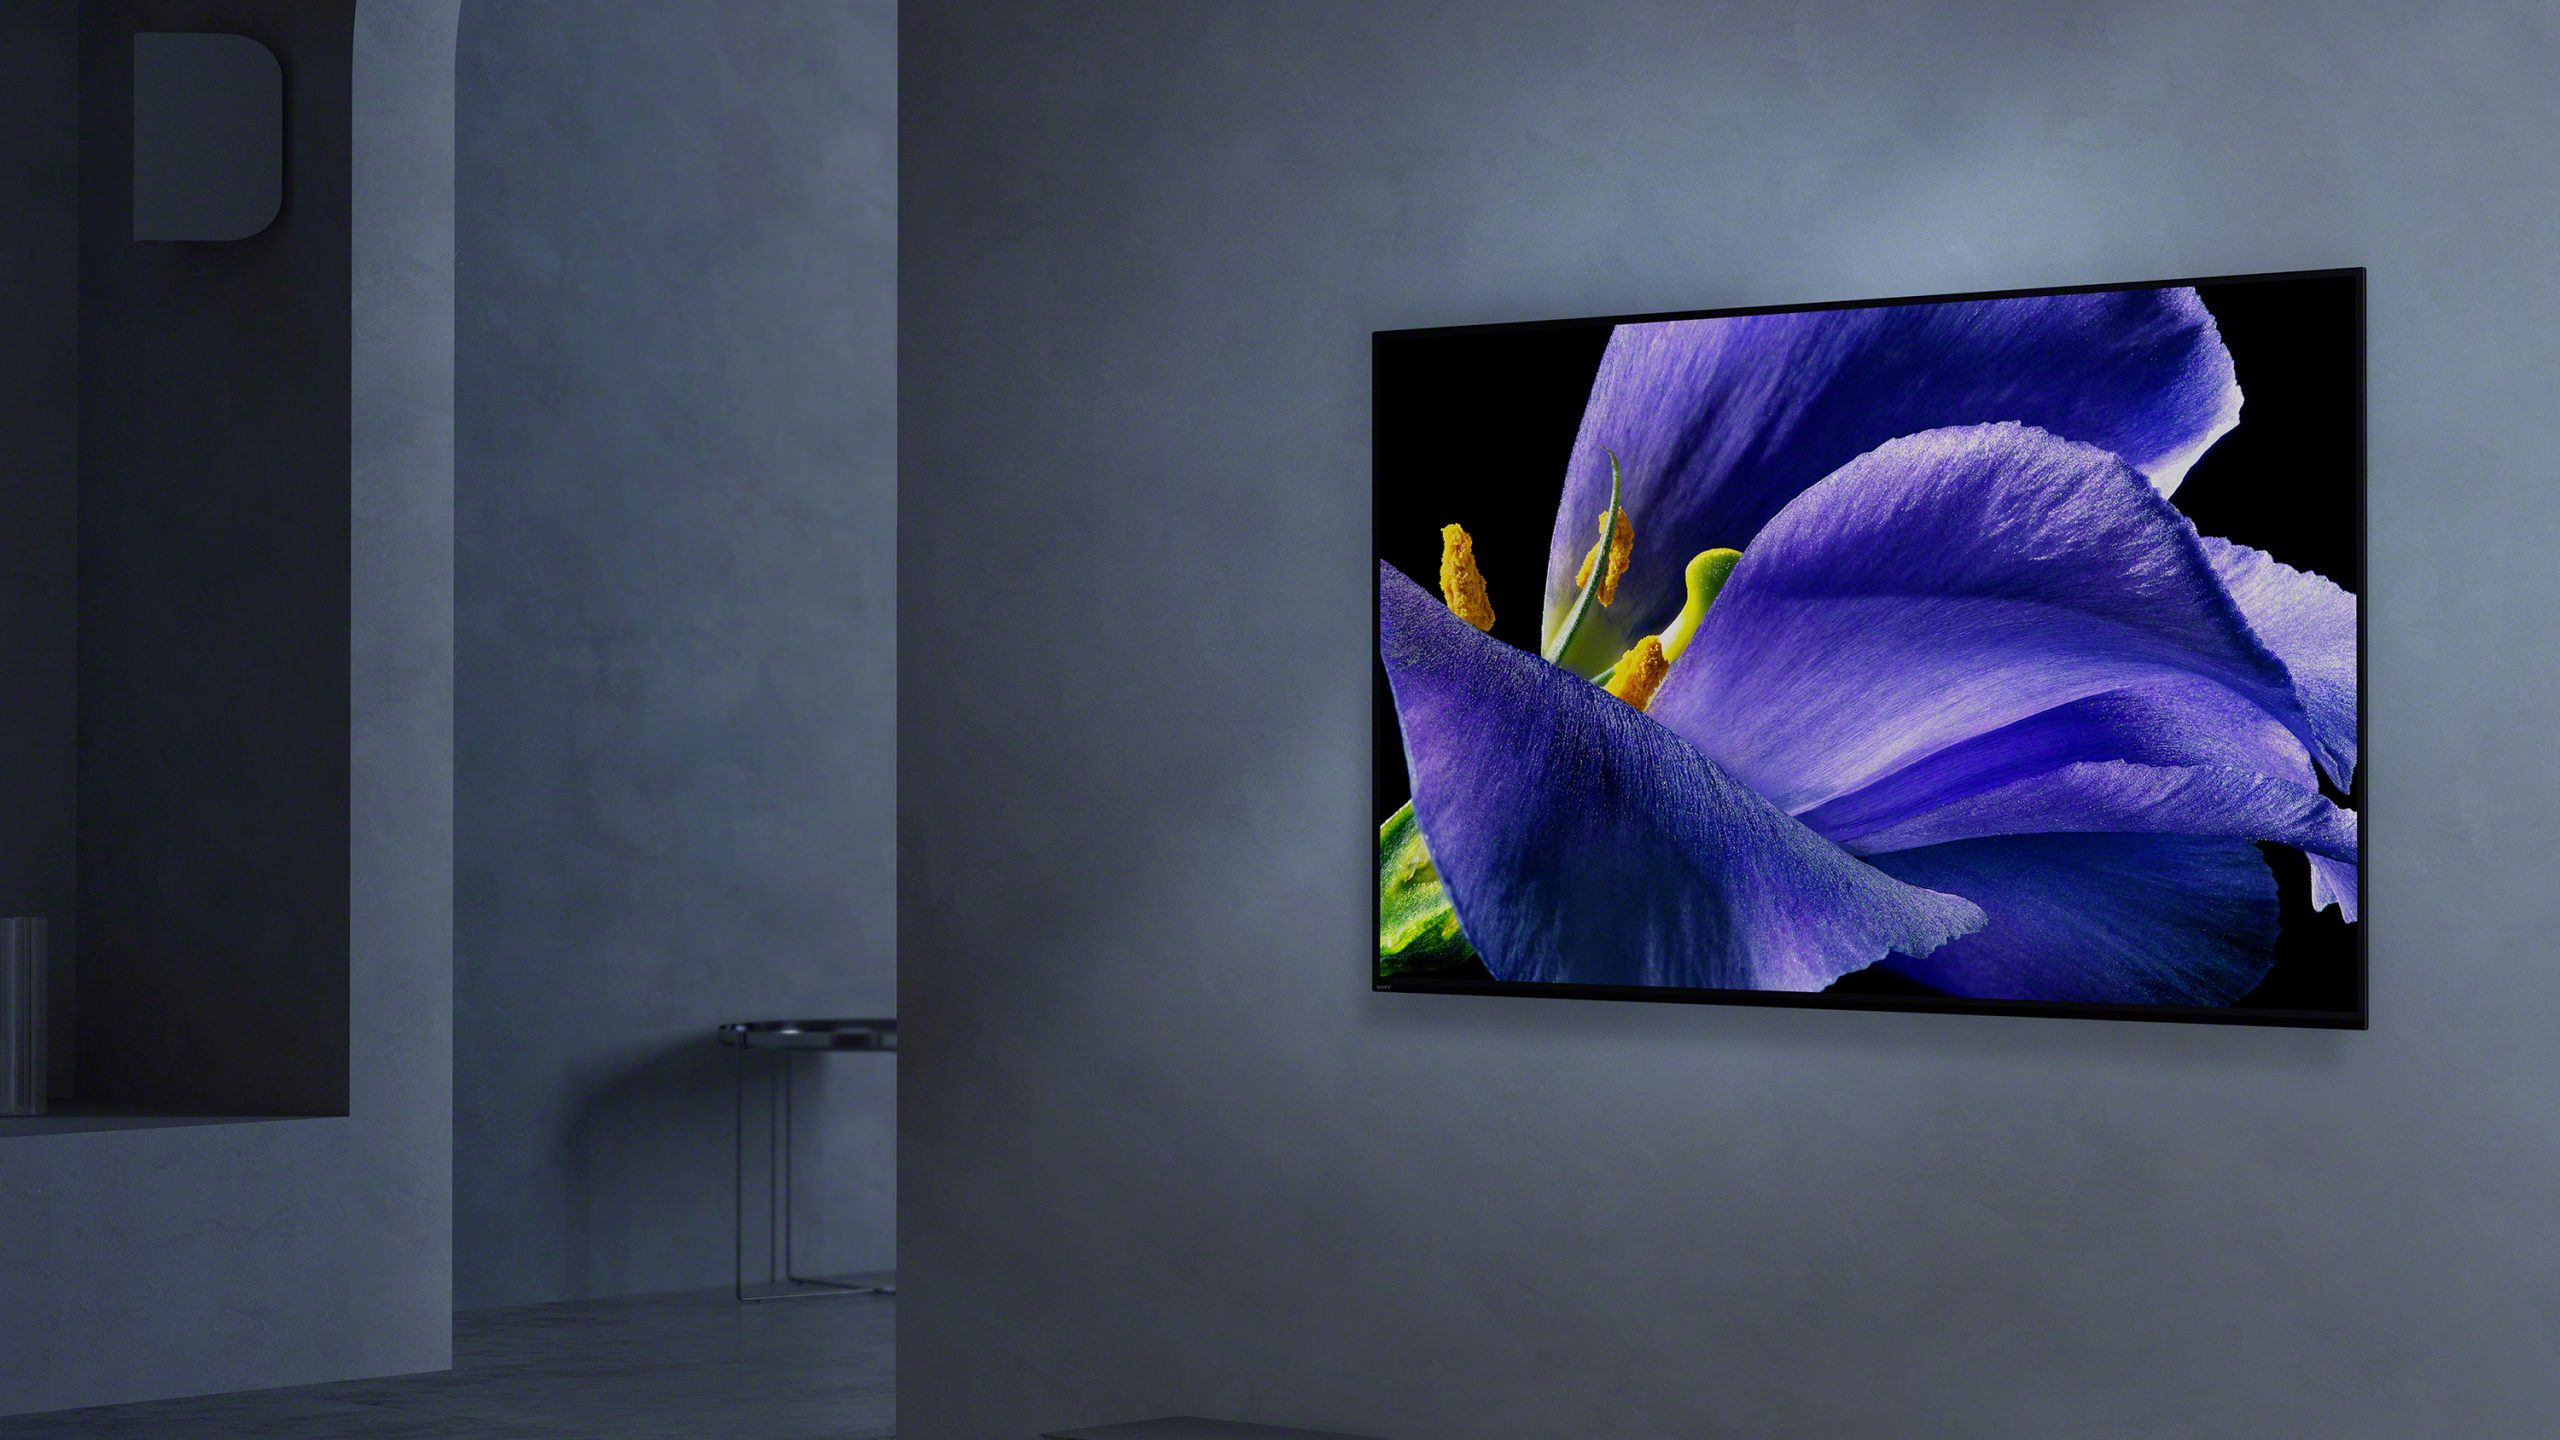 TV Screen on a wall